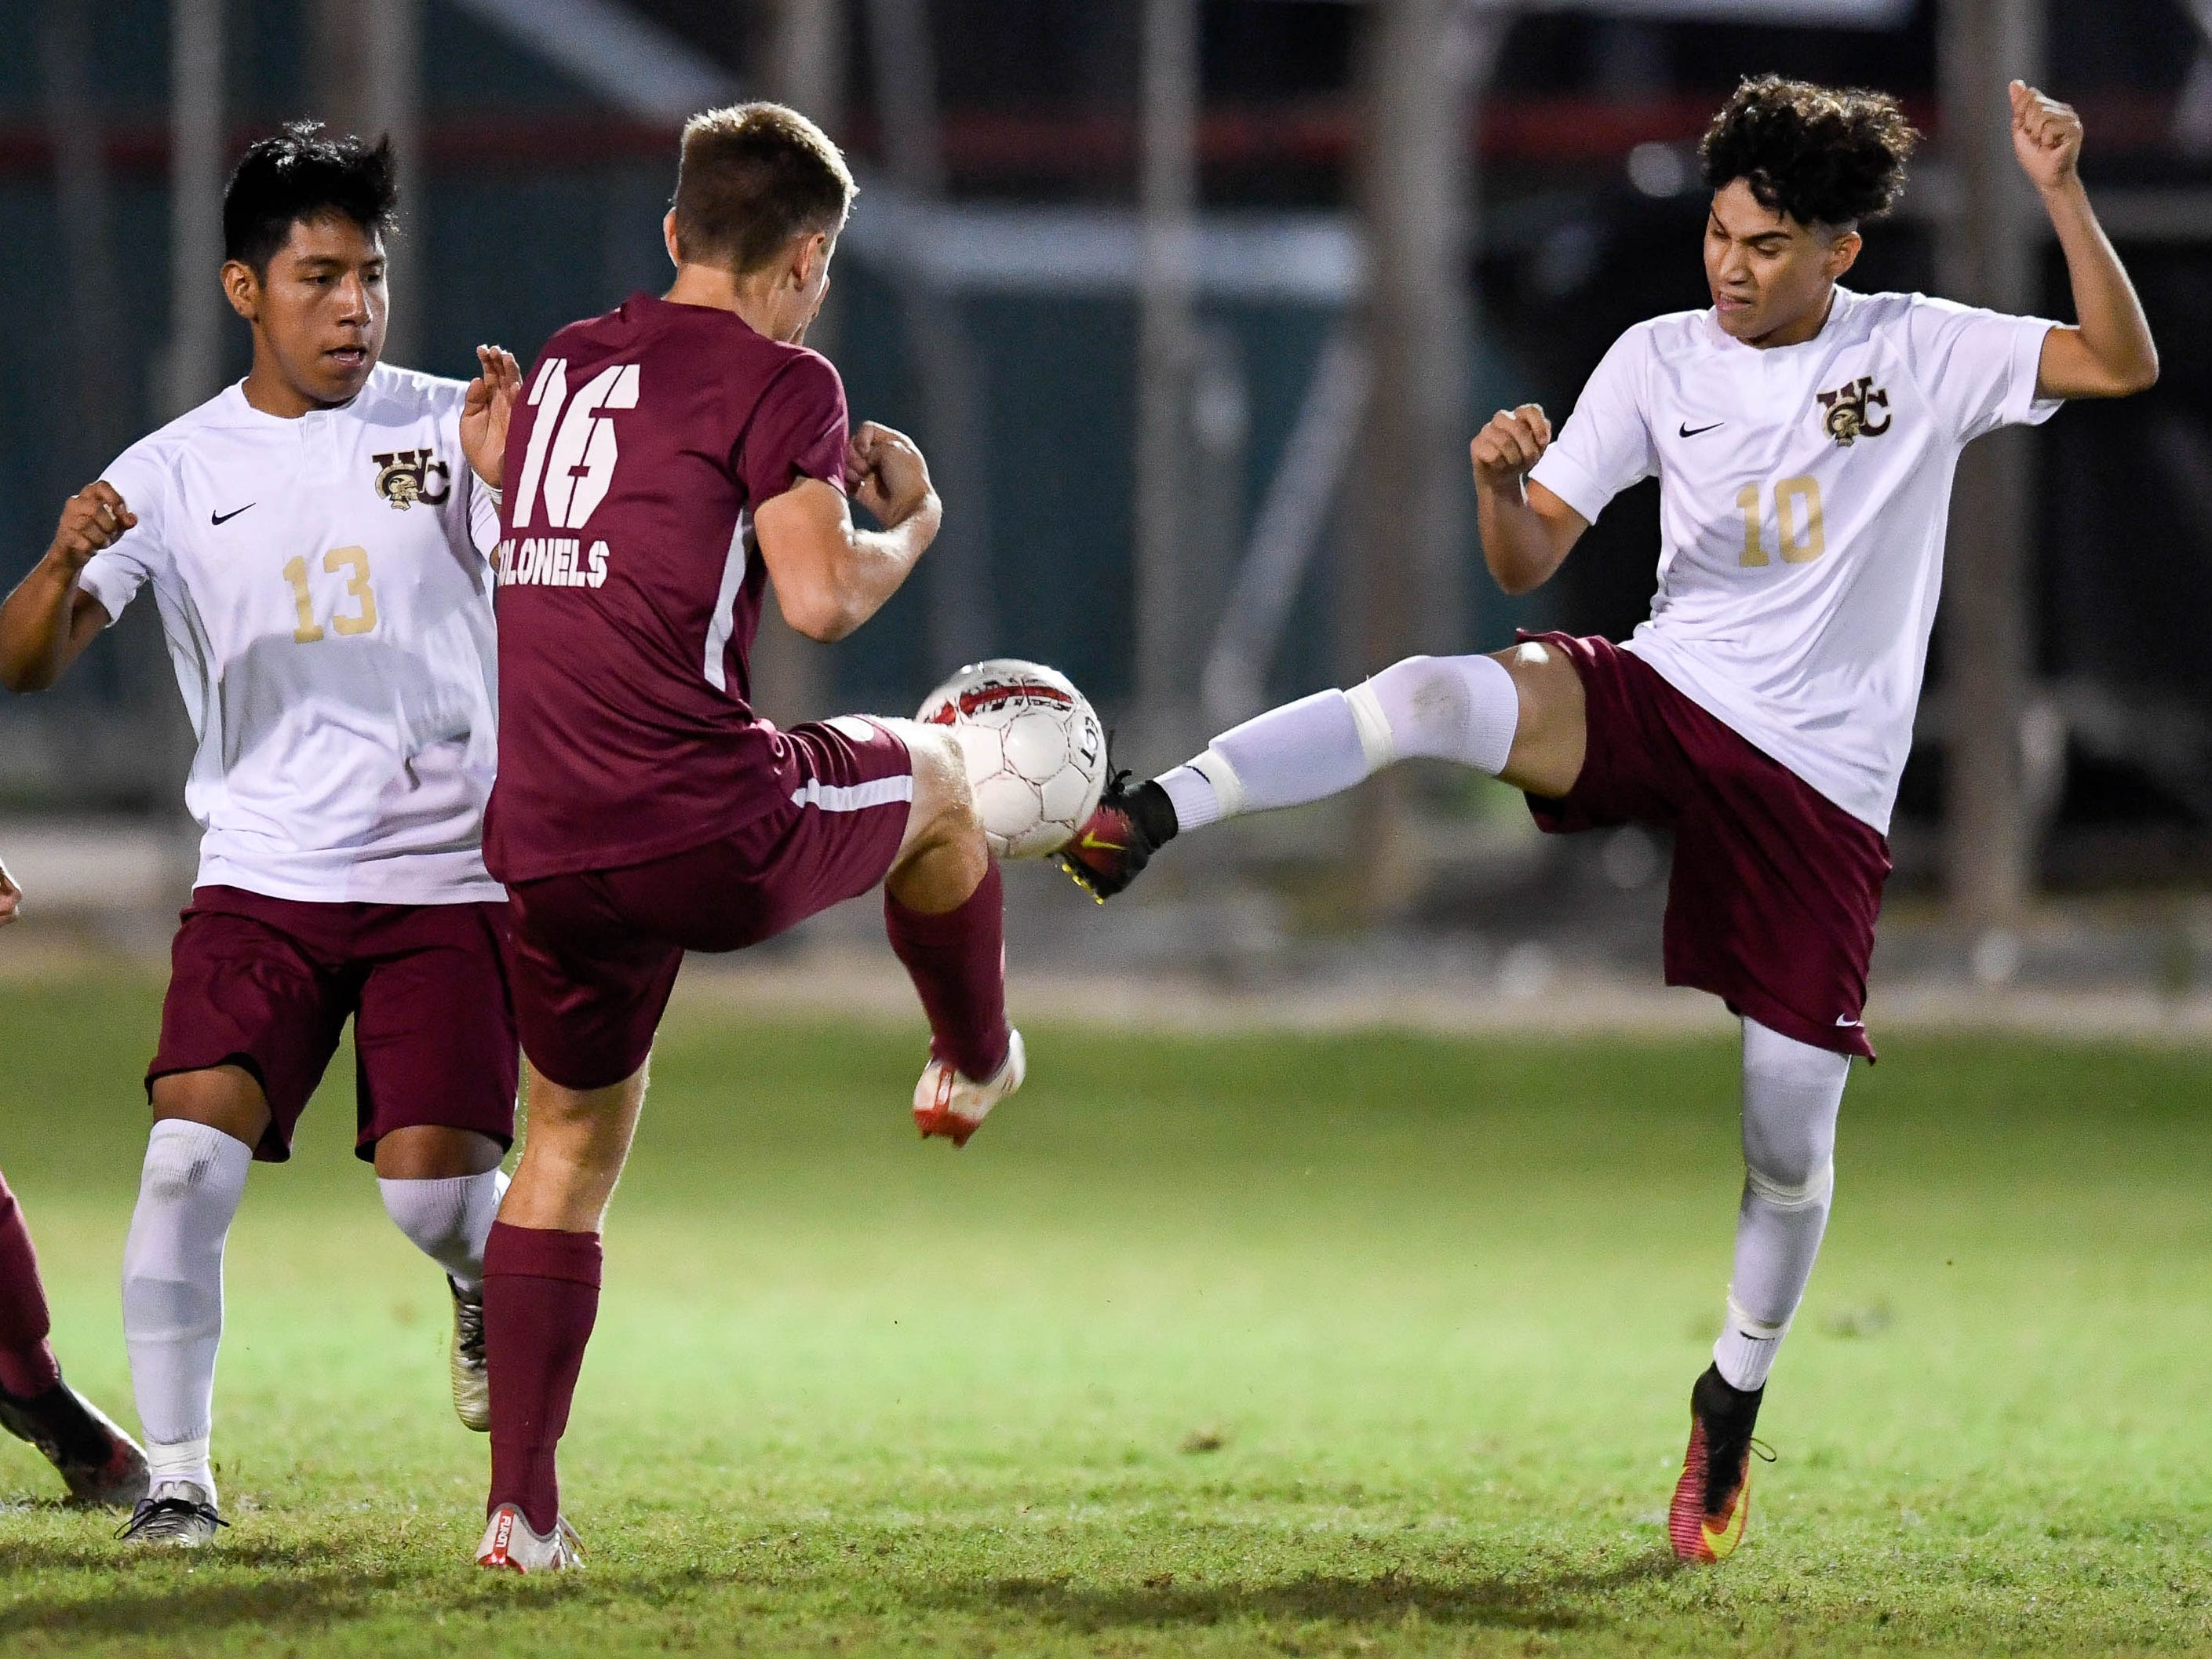 Henderson County's Lucas Butler (16) and Webster's Santos Portillo (10) battle for control of the ball as the Henderson County Colonels play the Webster County Trojans in the Sixth District Soccer Tournament at Colonel Field Wednesday, October 10, 2018.